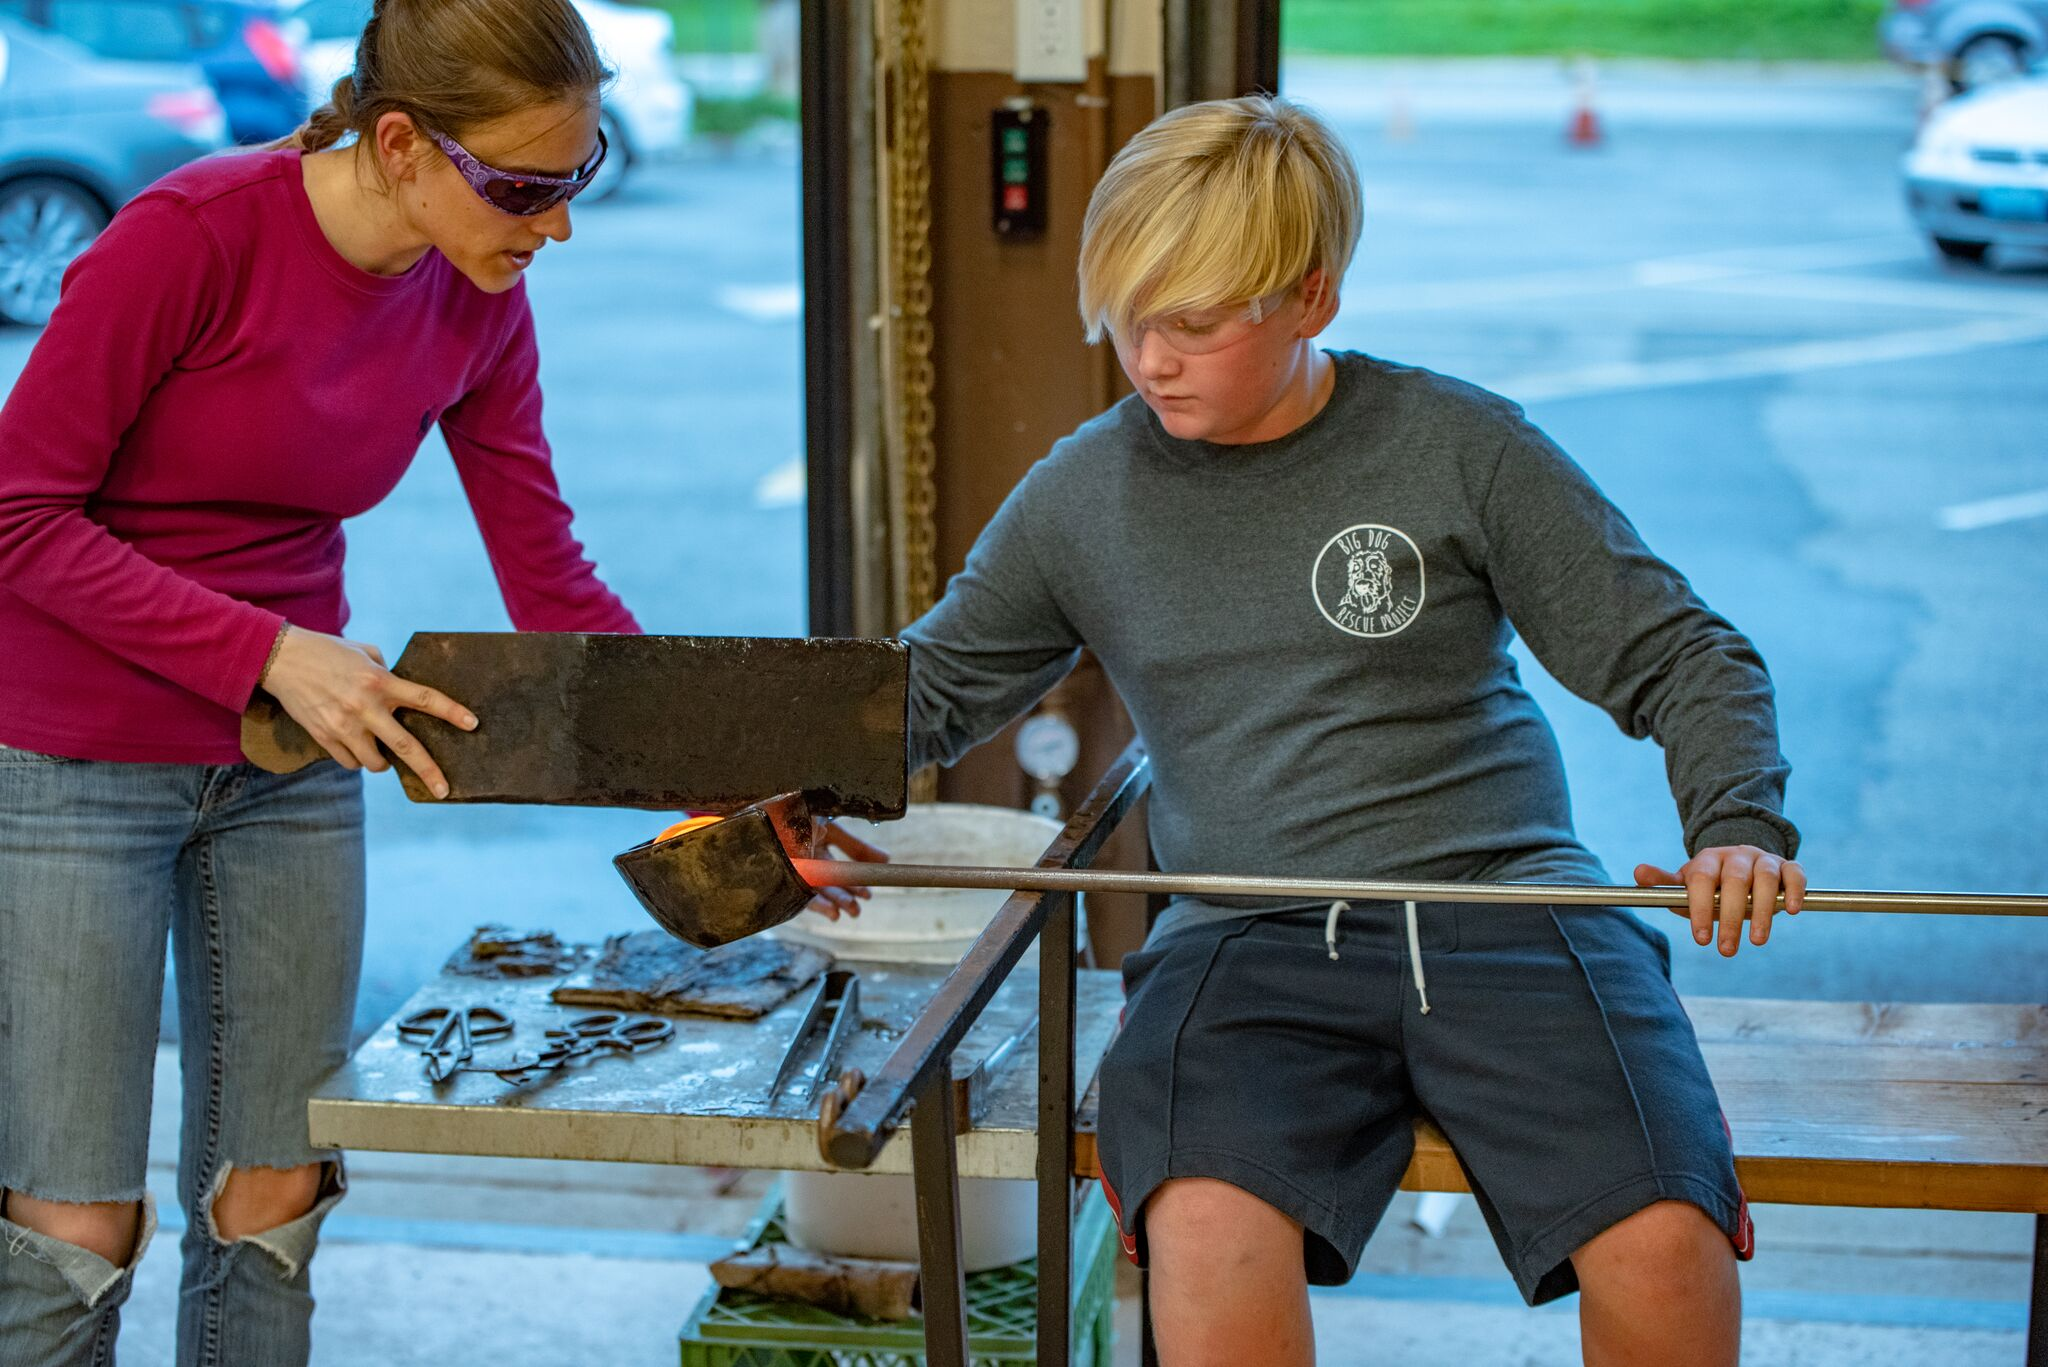 Morris County School of Glass Top Attraction in Morris County, NJ